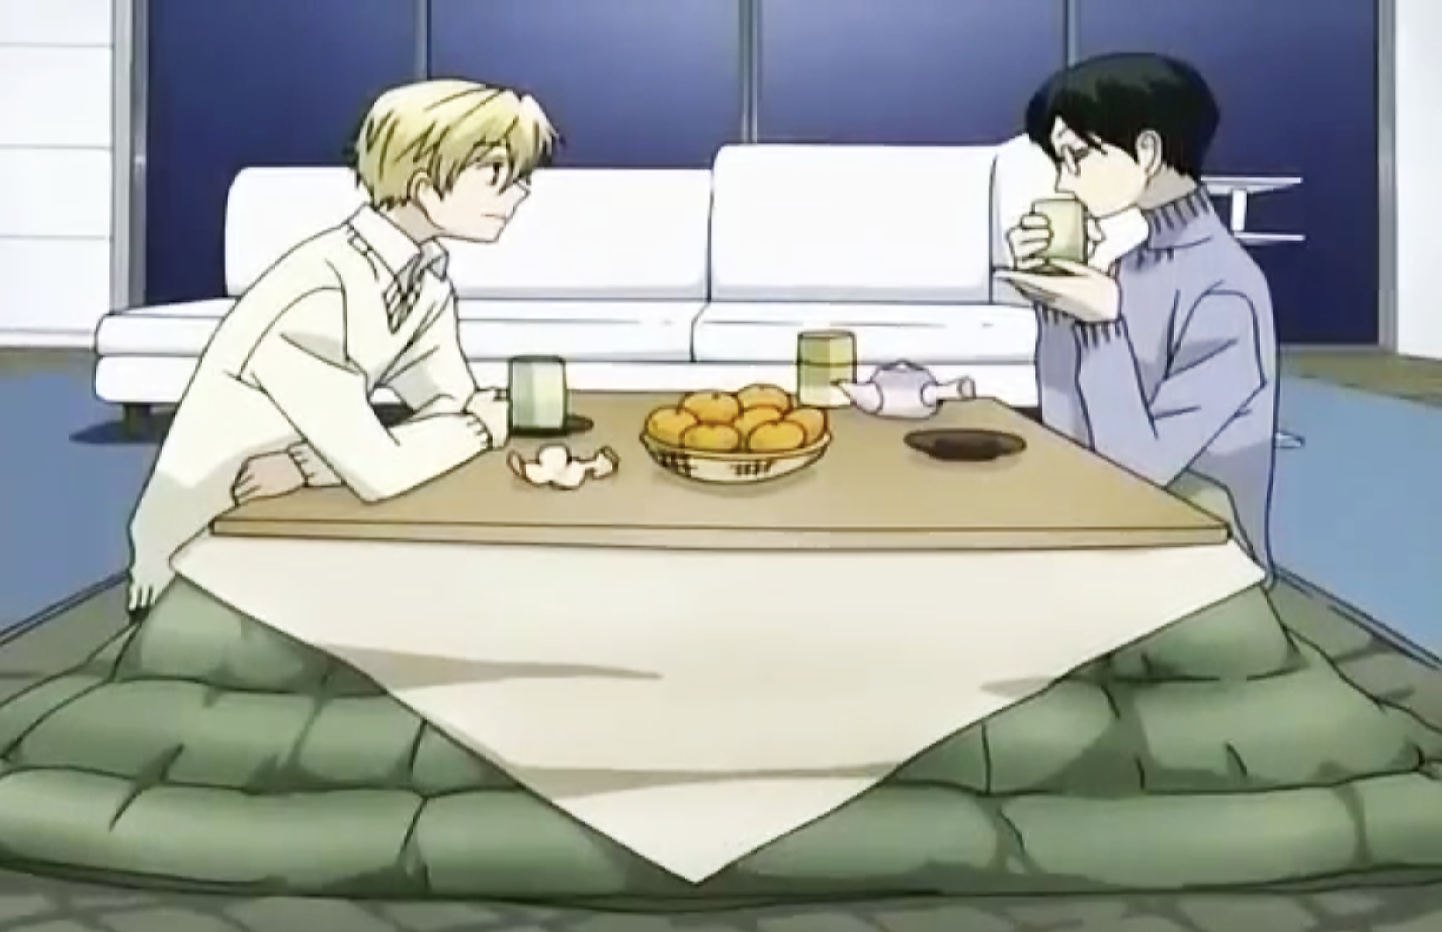 Two anime characters sitting at a low dining table drinking green tea; the table is covered by a kotatsu